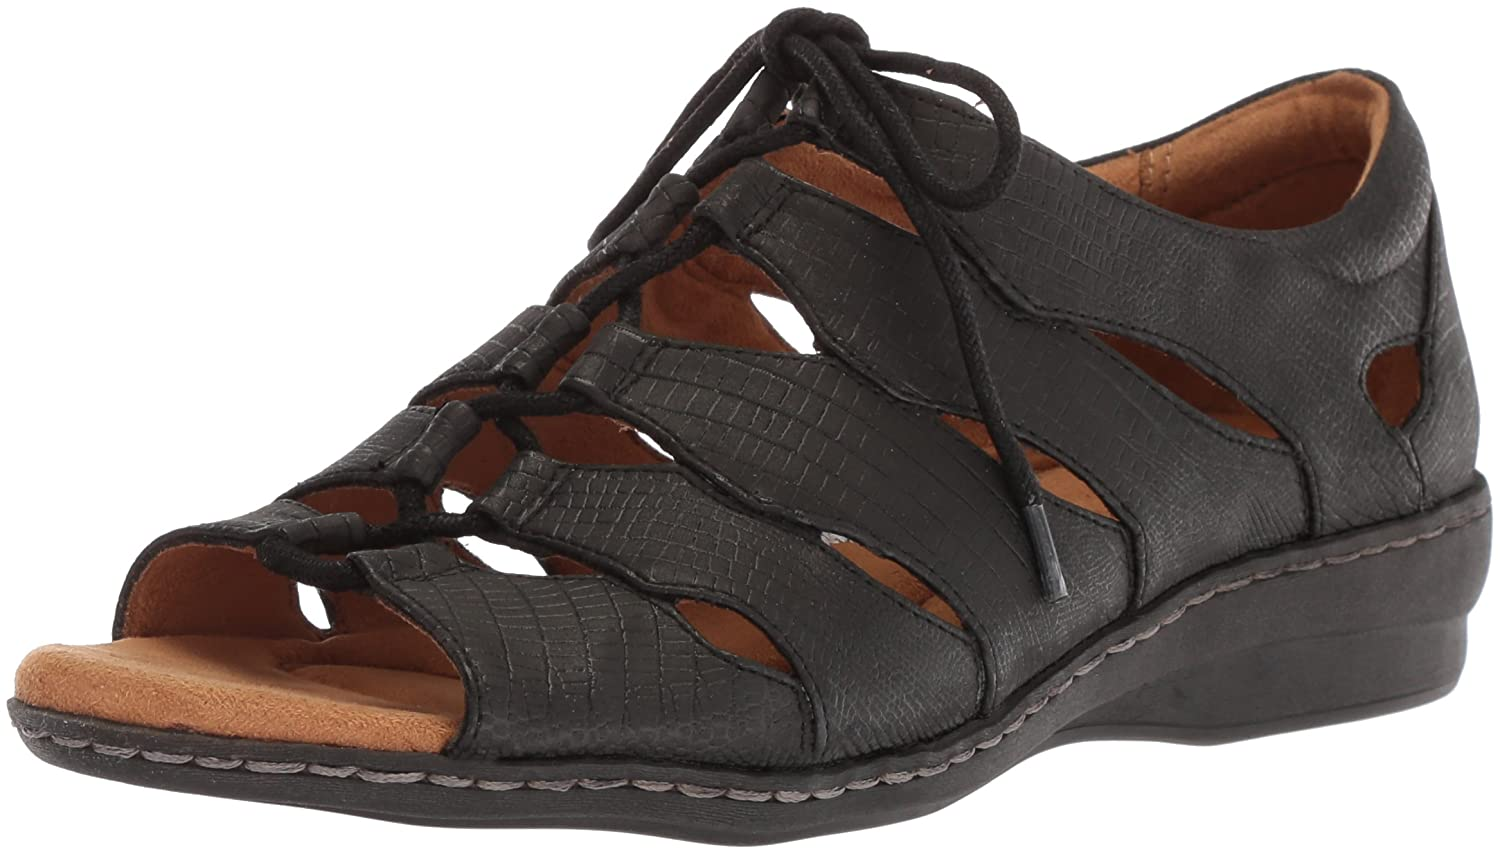 NATURAL SOUL Women's Beatrice Fisherman Sandal B071Z6HK7V 6 B(M) US|Black Lizard